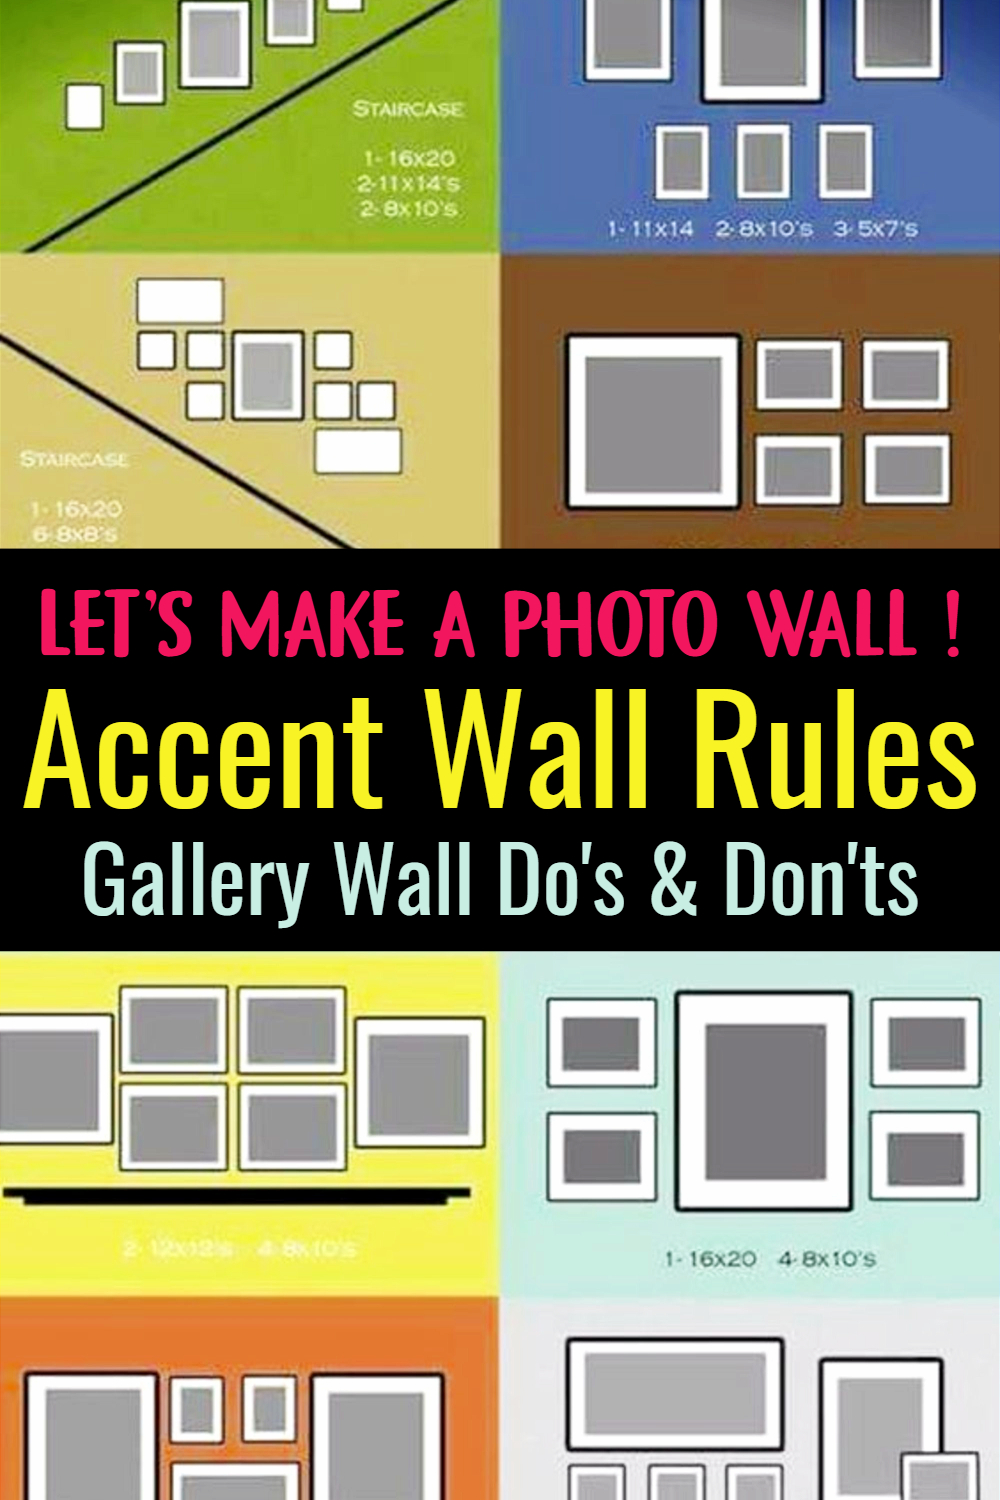 Accent Walls Rules for Creating a Photo Accent Wall - Images of Accent Walls and Accent Wall Ideas, Dos and Don'ts - PICTURES living room accent wall with brown furniture - decorating ideas for tv wall - accent wall paint pattern ideas - how to choose an accent wall in living room - examples of accent wall color combinations- gallery wall dos and donts - learn how to make a photo wall in your room and how to create a gallery wall around tv